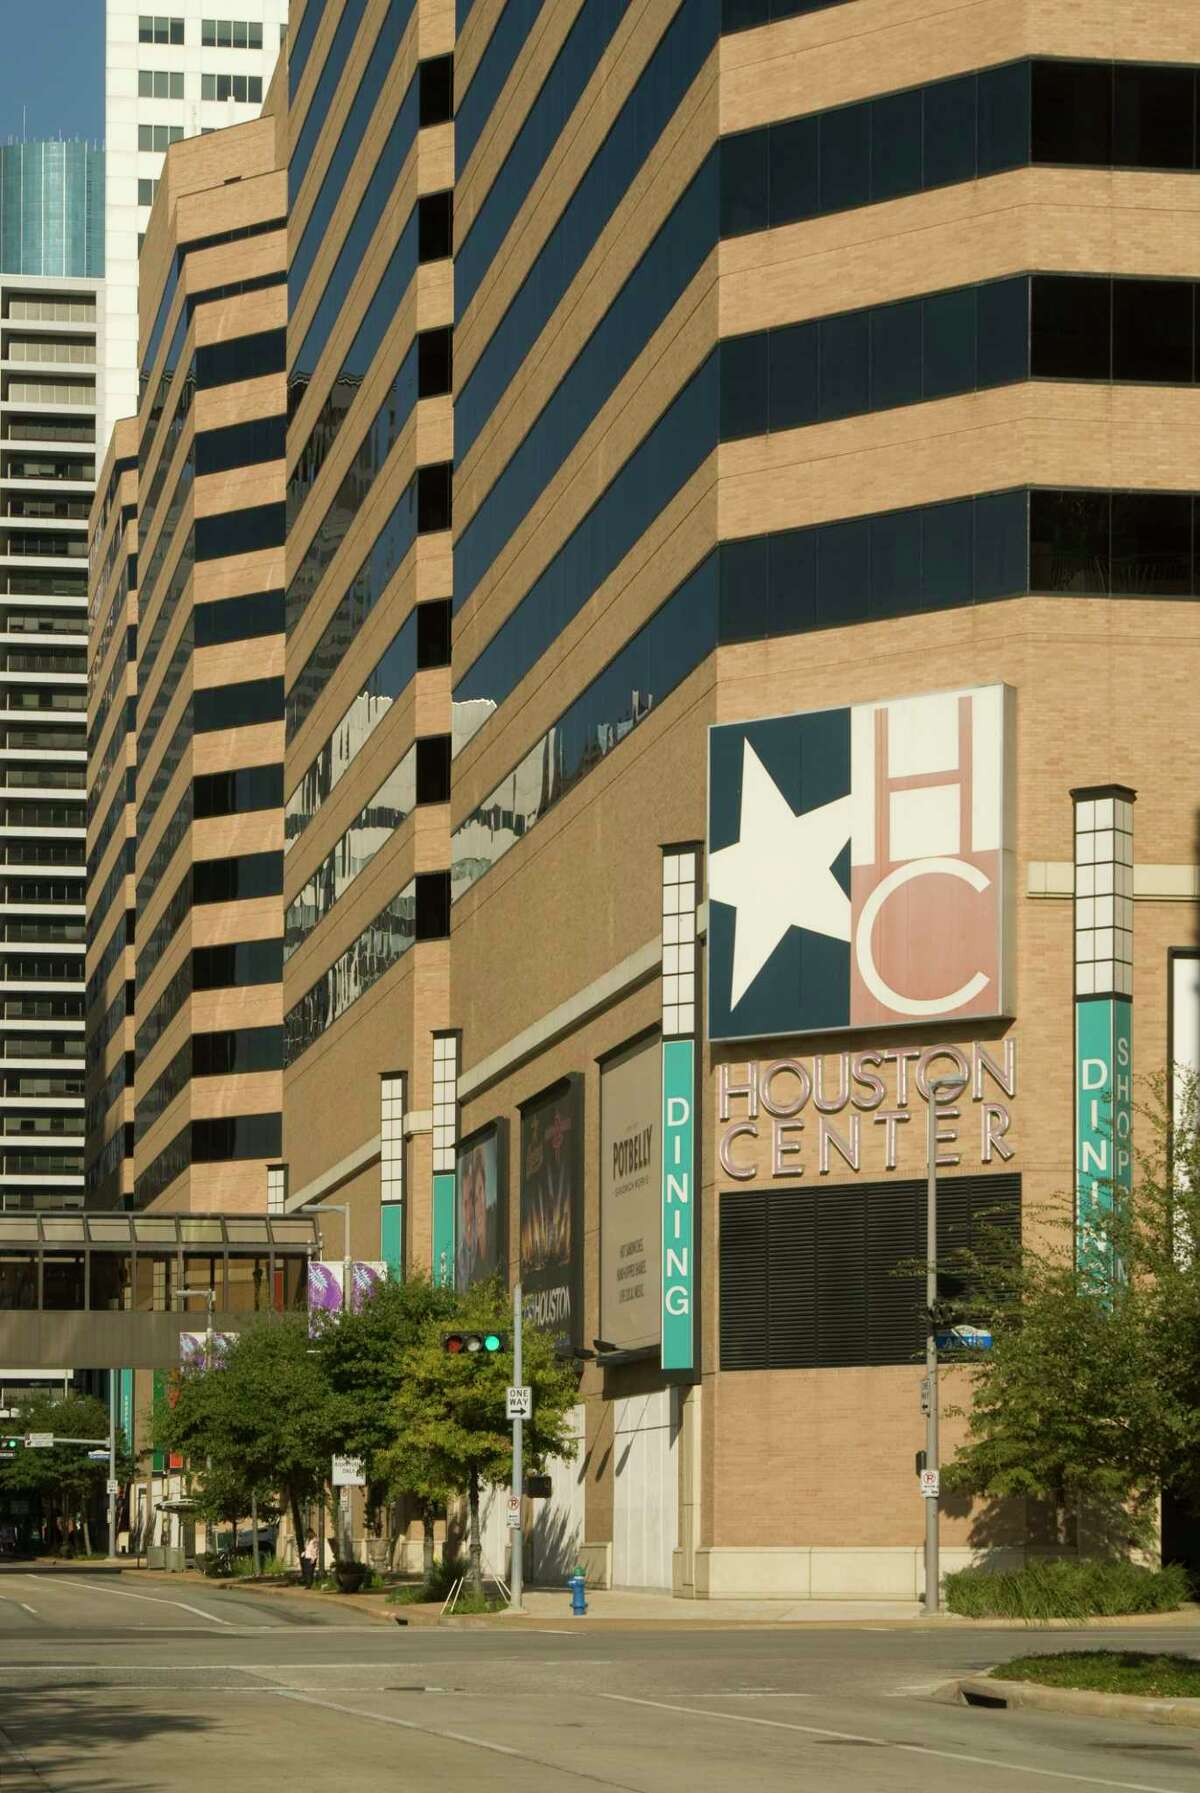 Brookfield Property Partners has closed on its purchase of Houston Center,a 4-building complexwith 12 million square feet of properties on the eastern edge of downtown. Buildings include 2 Houston Center,Fulbright Tower,LyondellBasell Towerand4 Houston Center, Photos are embargoed for 12/4/17.